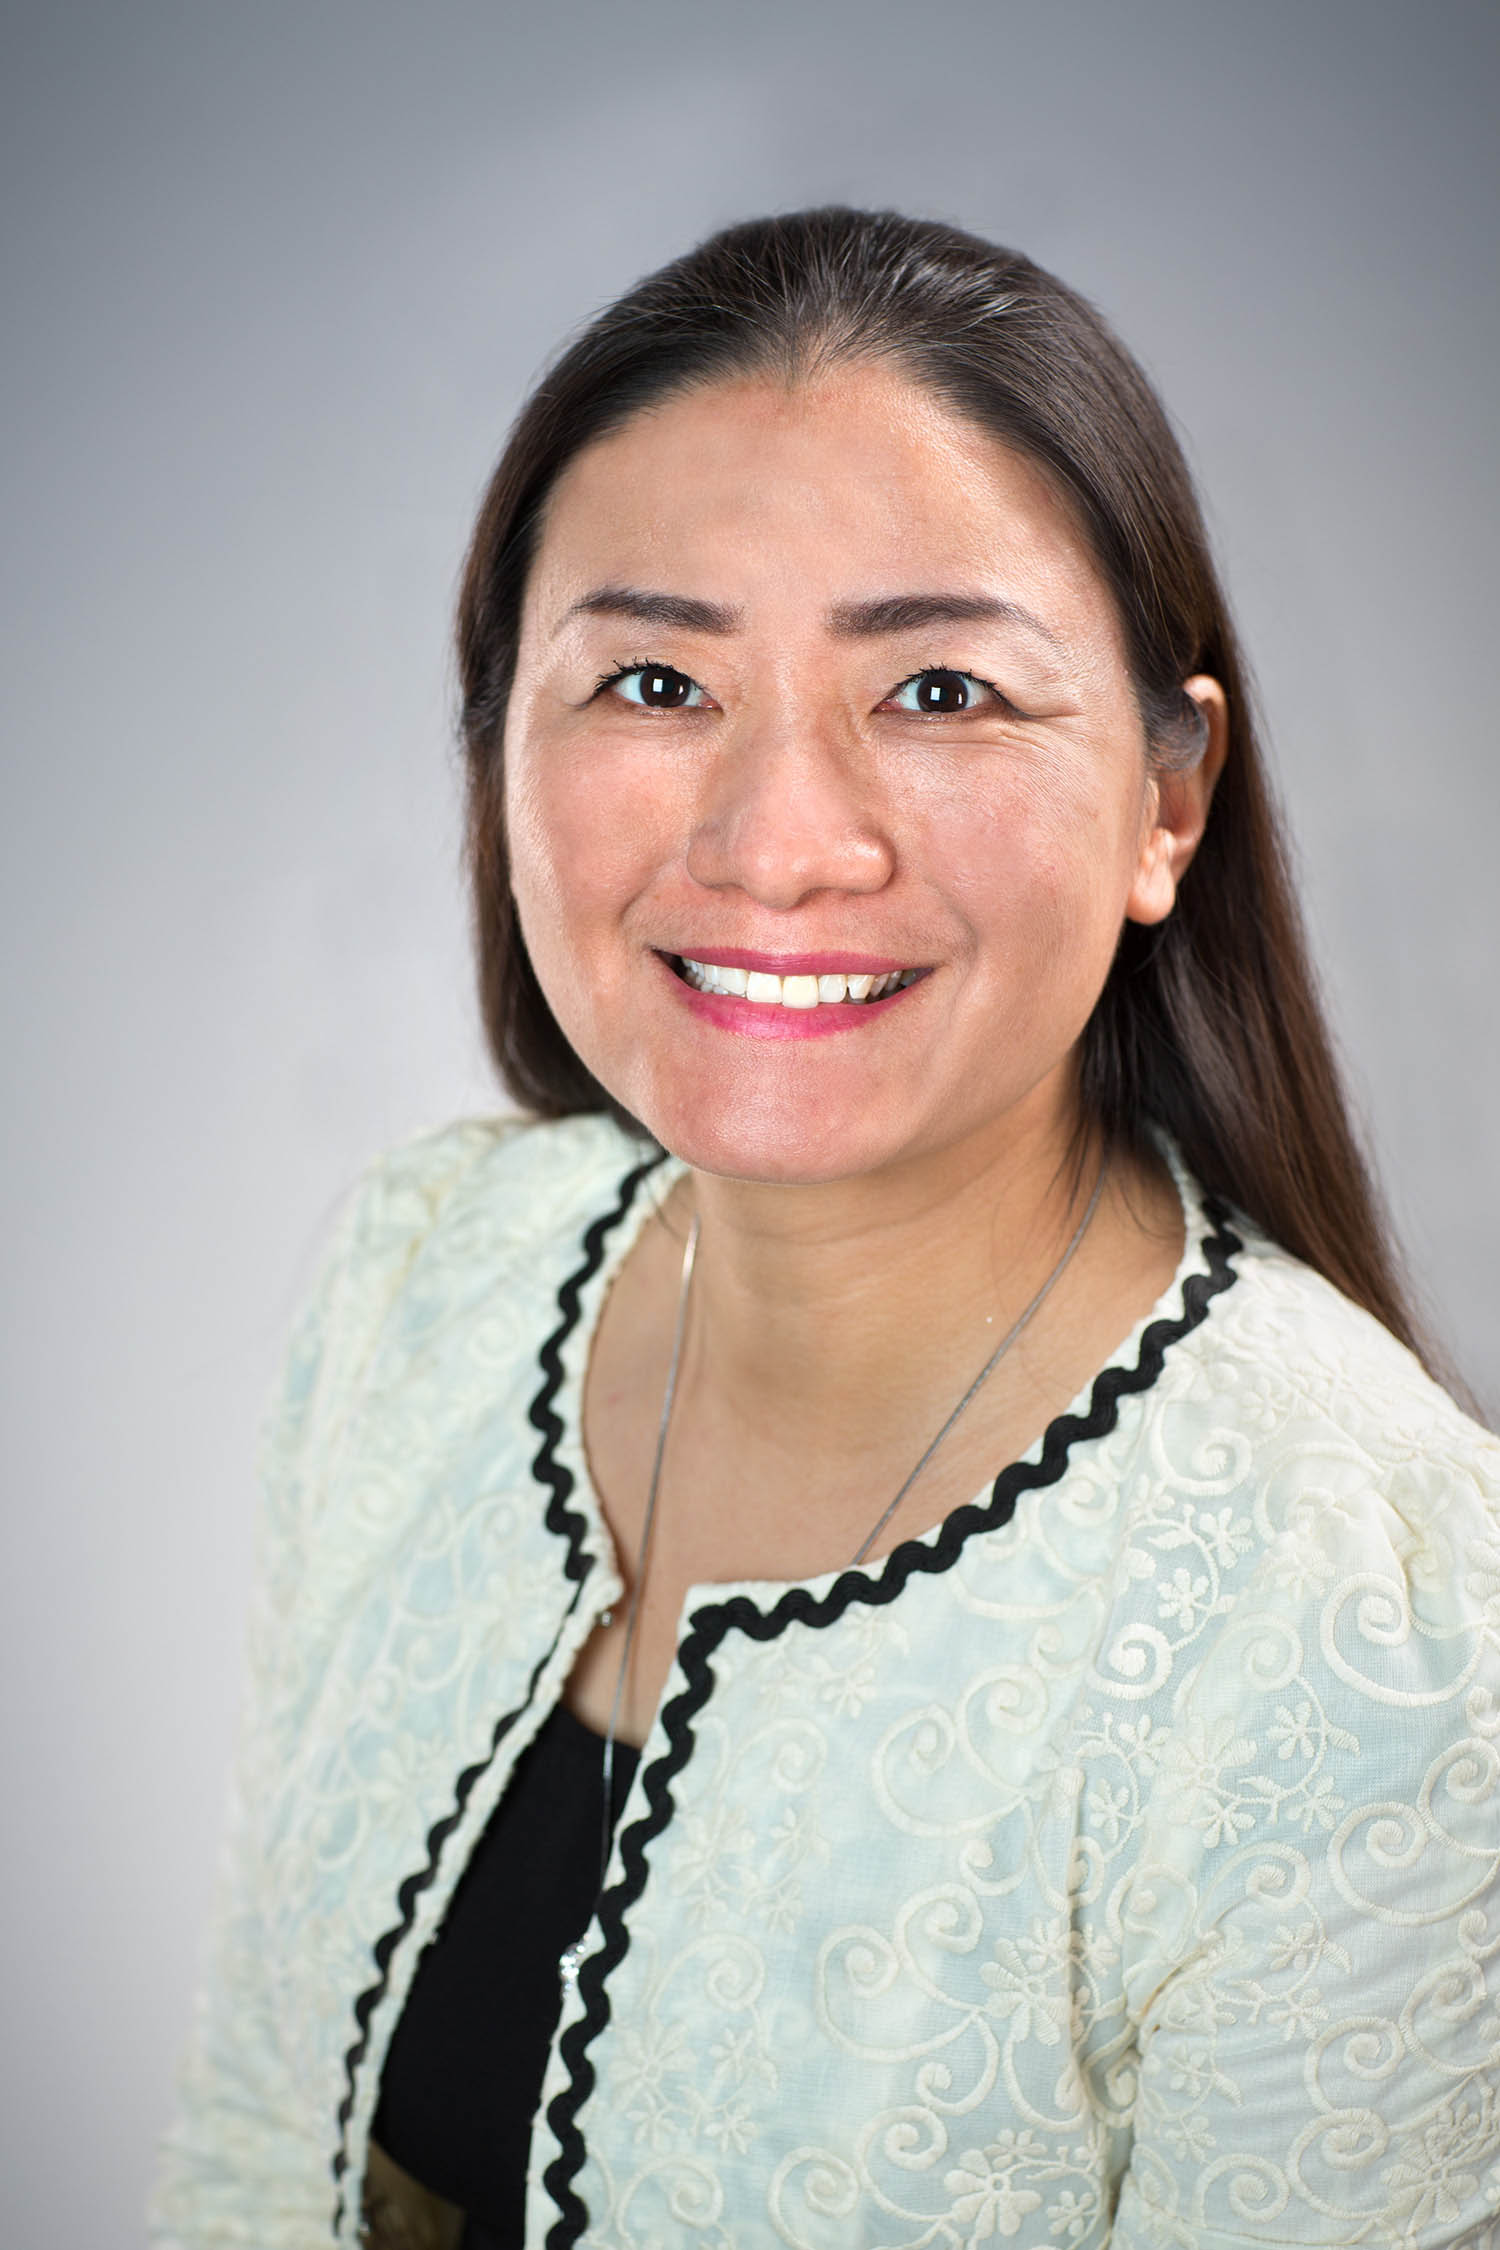 Jun Ma - Jun has been working for Maurizi over 8 years. However, her years of valuable experience in management at various companies have prepared her well. Jun has gained much knowledge and practice from all the companies that she has served. Additionally, Jun has shown creativity and innovation in resolving problems and in commitment to build consensus. Ma has excellent communication and interpersonal skills and good ability to transform thoughts into words. Sharp acumen and experience have made Jun versatile and able to cultivate good business relationships within each organization. Jun has a strong learning curve that helps her think outside the box. She is a team player and eager to learn new concepts for her professional as well as personal enhancement. She holds a bachelor of Accounting from Columbia College. While in college, Jun made the Dean's list and she received many academic awards as well. Also, Jun has been honored from Alpha Lambda Delta Honor Society and Sigma Beta Delta Honor Society.